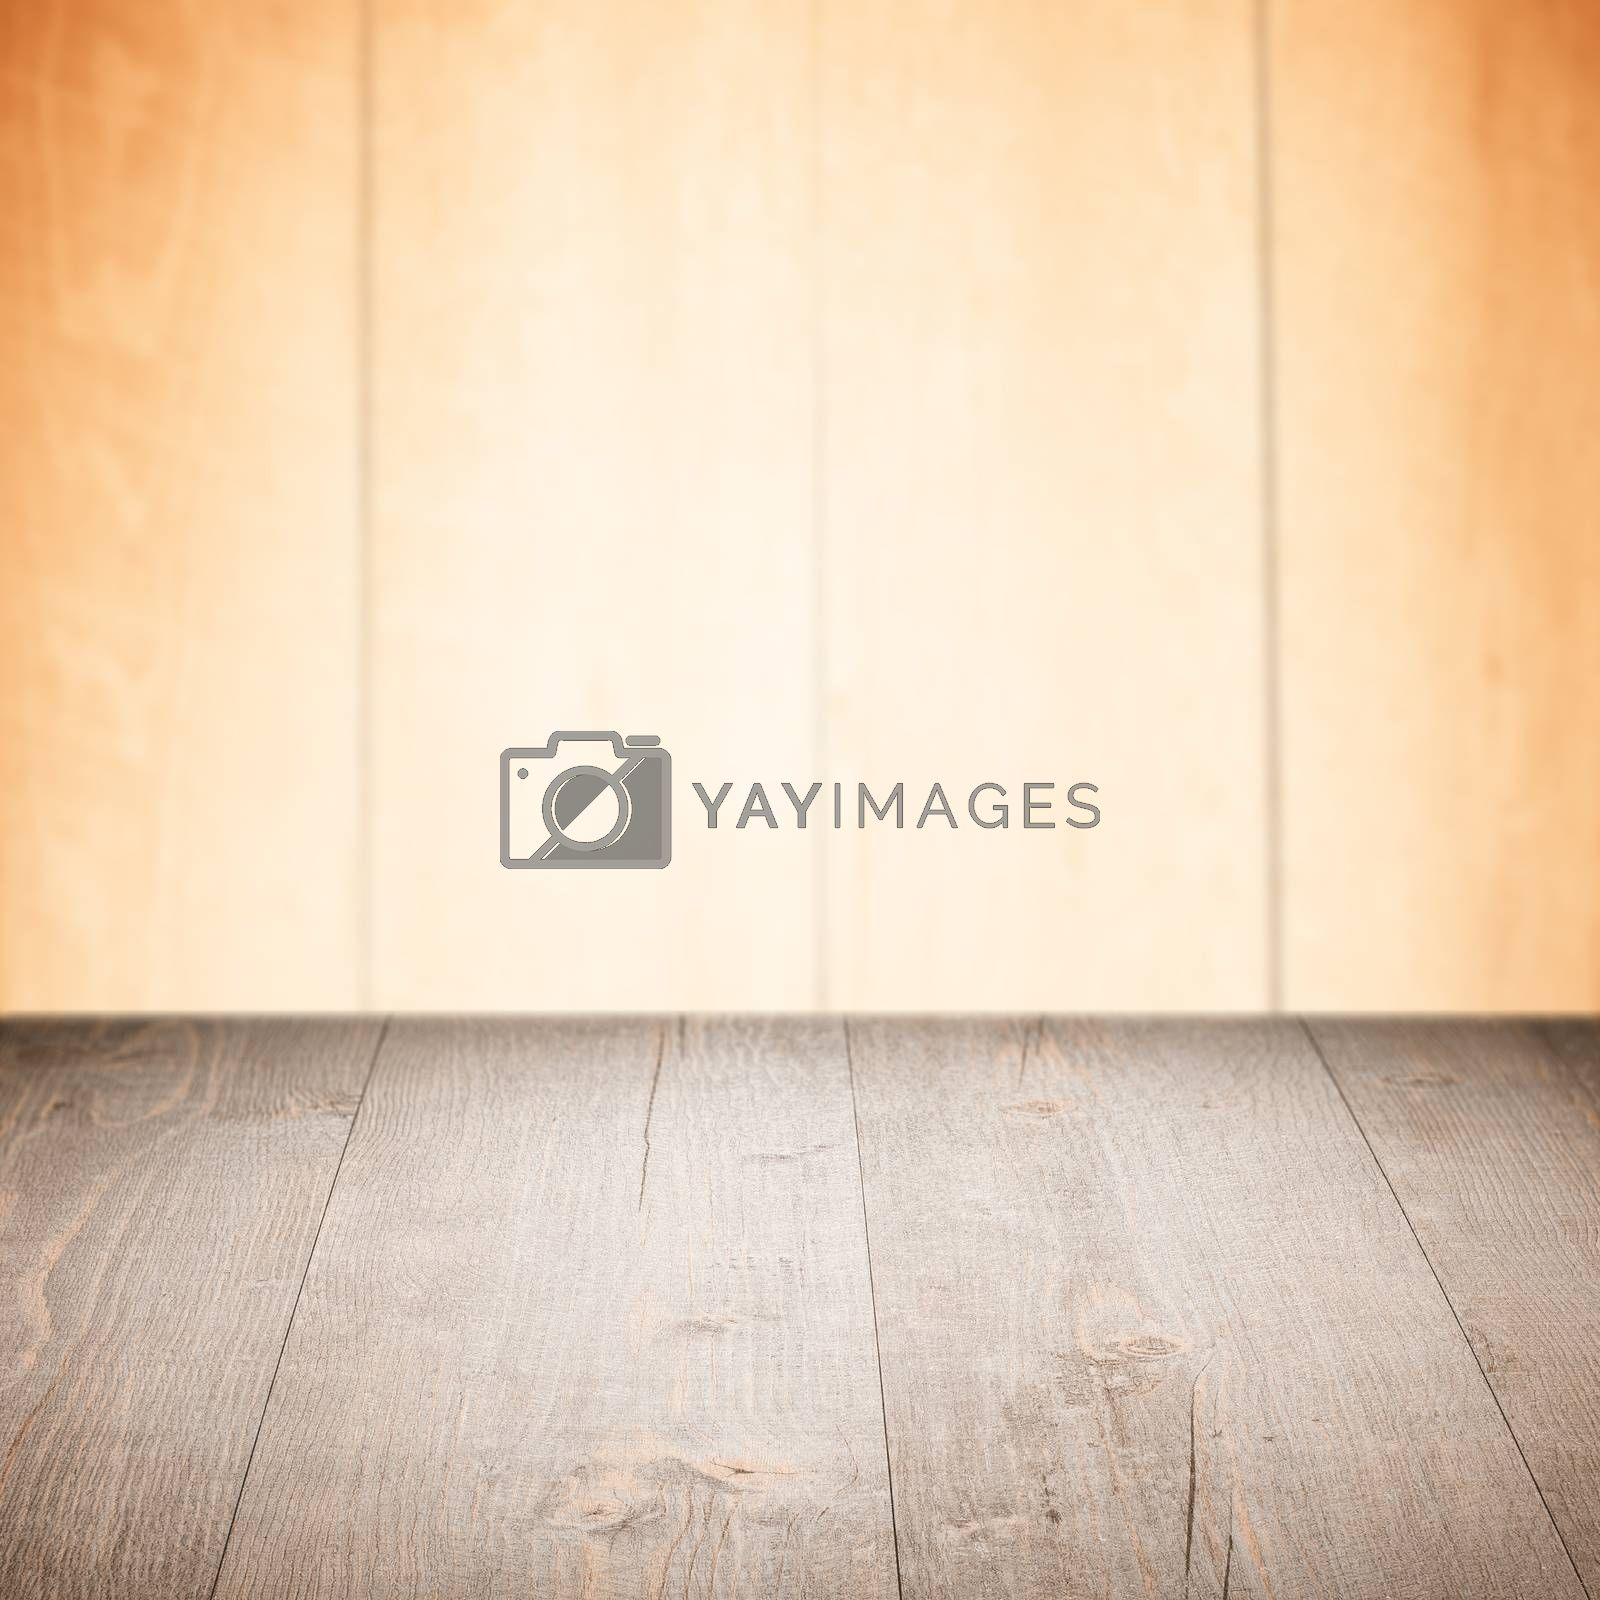 Royalty free image of Wood background  by homydesign